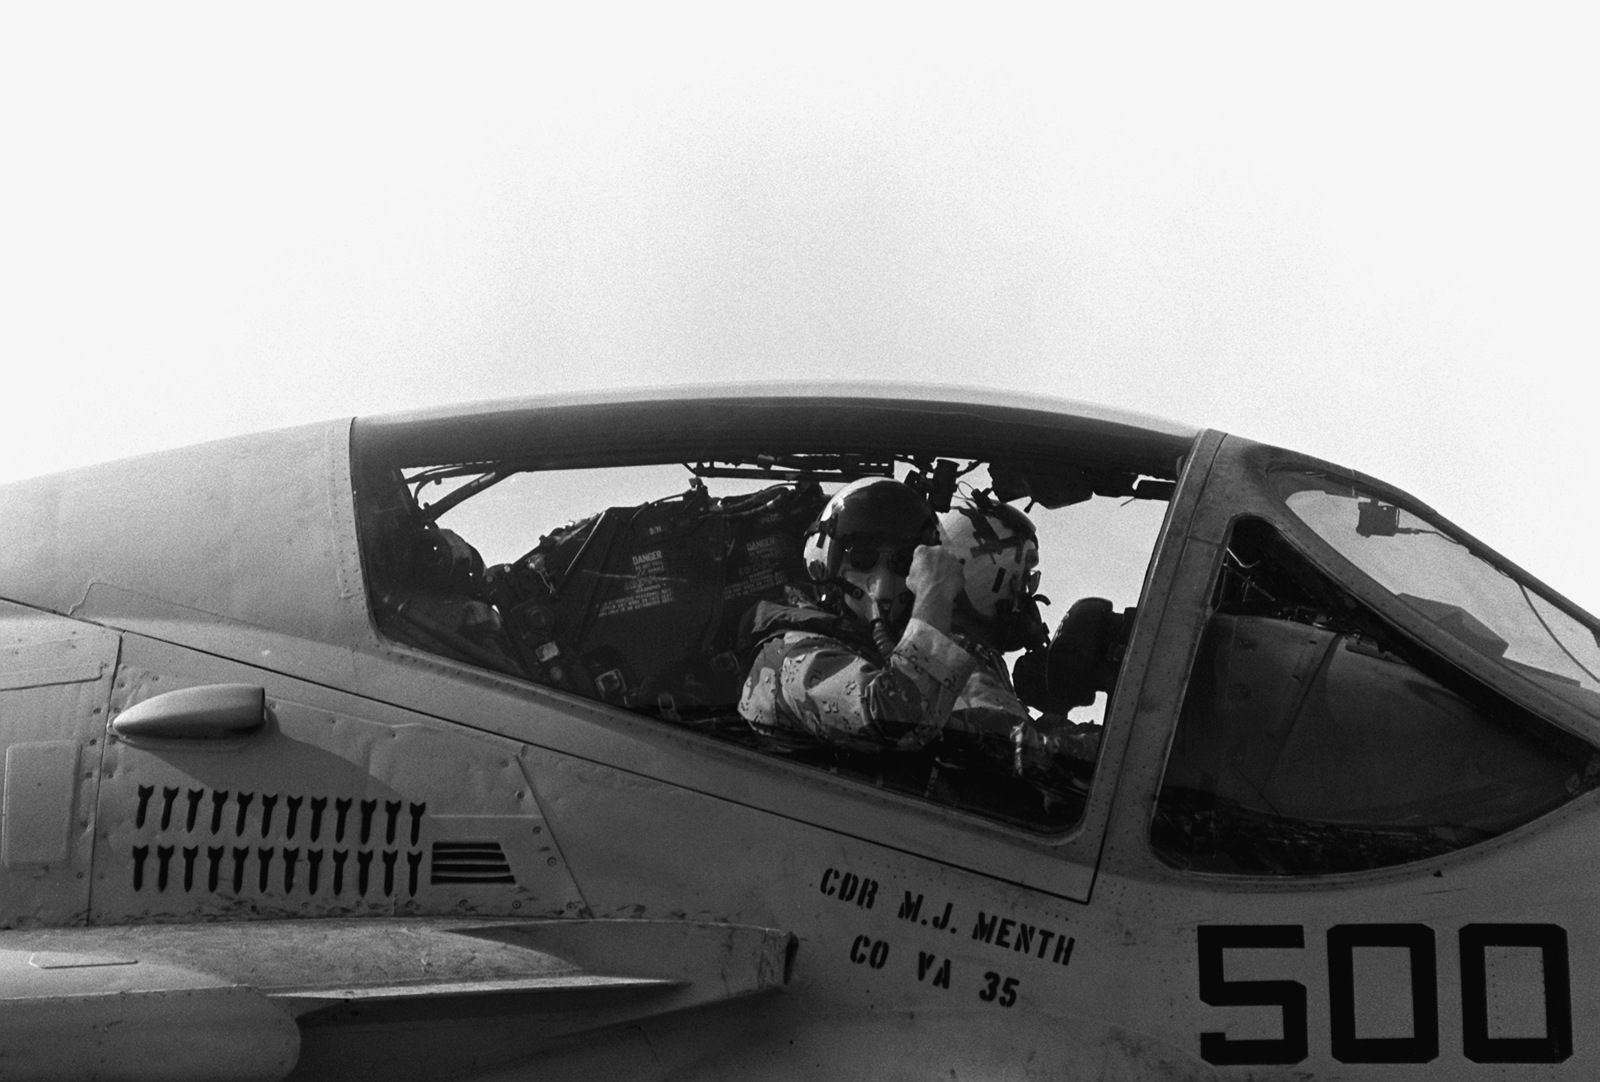 CMDR. Michael J. Menth, commanding officer of Attack Squadron 35 (VA-35), gestures to the awaiting crowd from the cockpit of his A-6E Intruder aircraft upon his arrival on base. Members of Carrier Air Wing 3 and Carrier Air Wing 17 are returning home after serving in the Persian Gulf during Operation Desert Storm